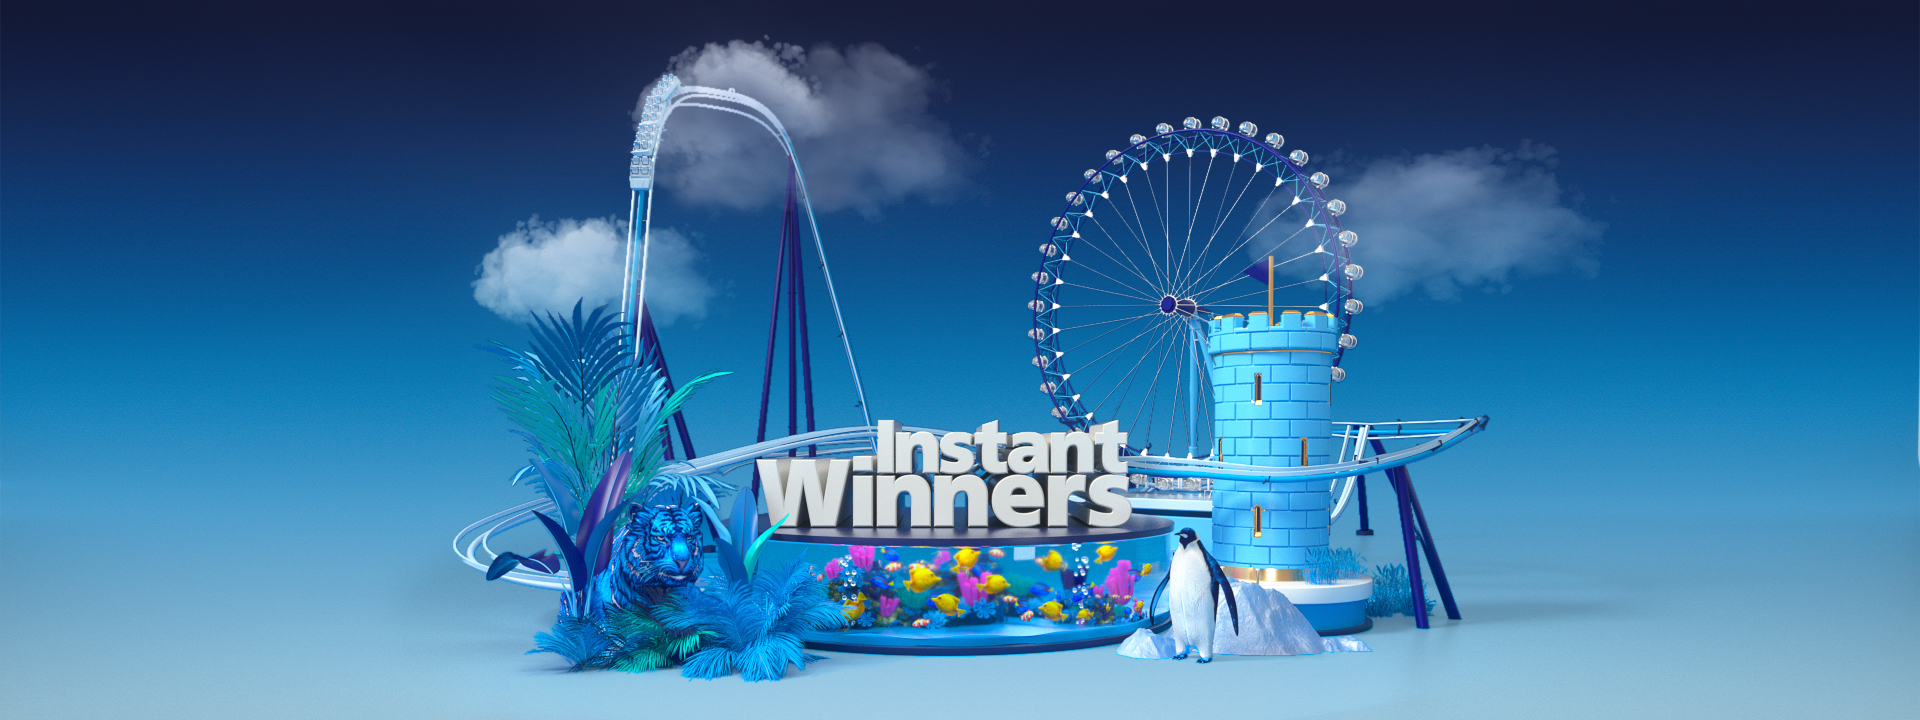 Instant Winners activity illustration